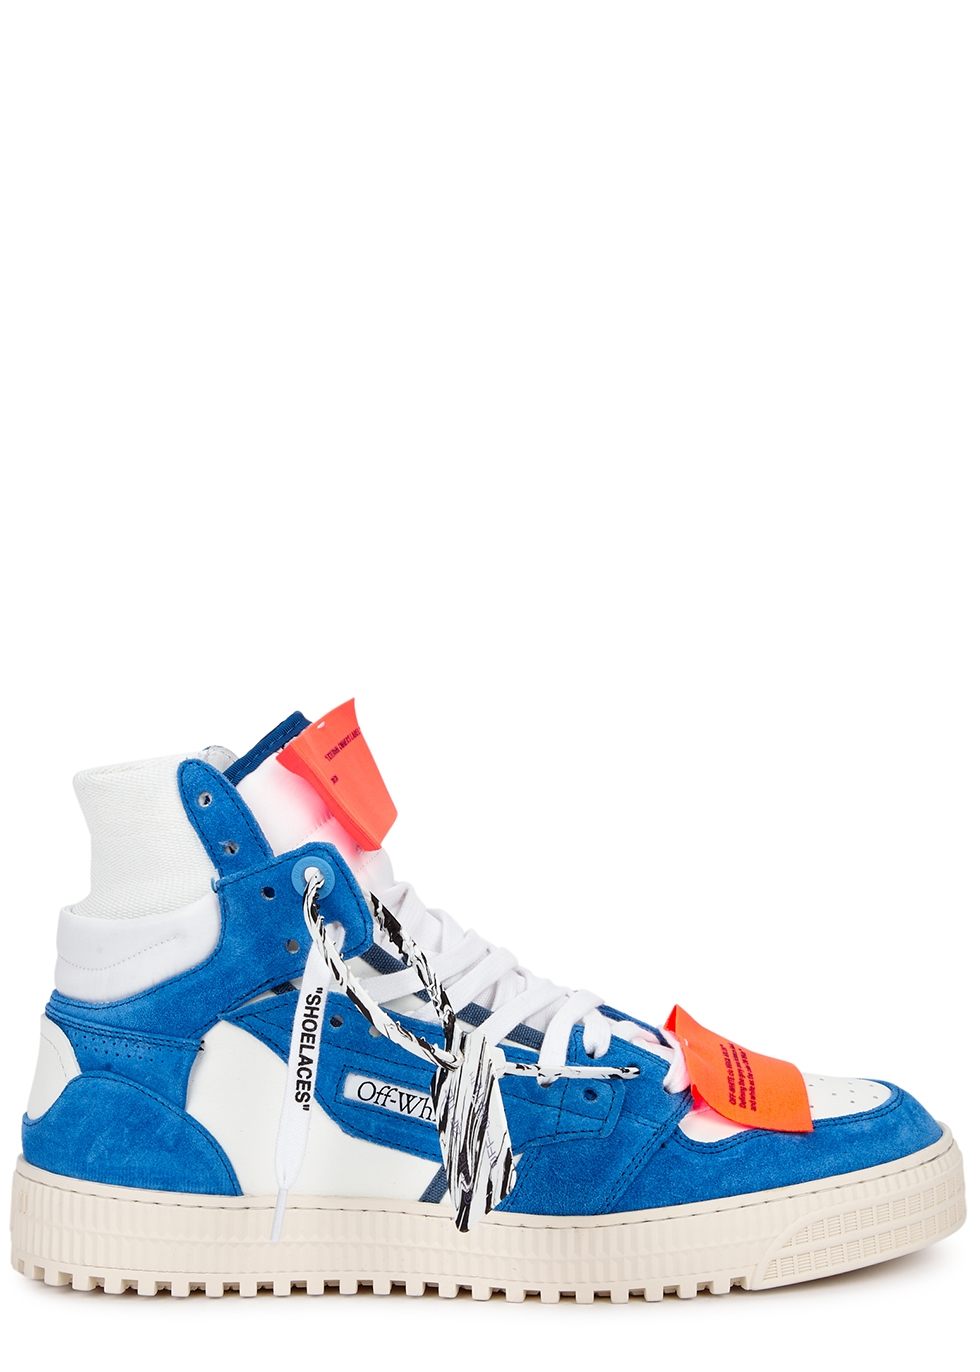 Off-Court 3.0 white leather hi-top sneakers